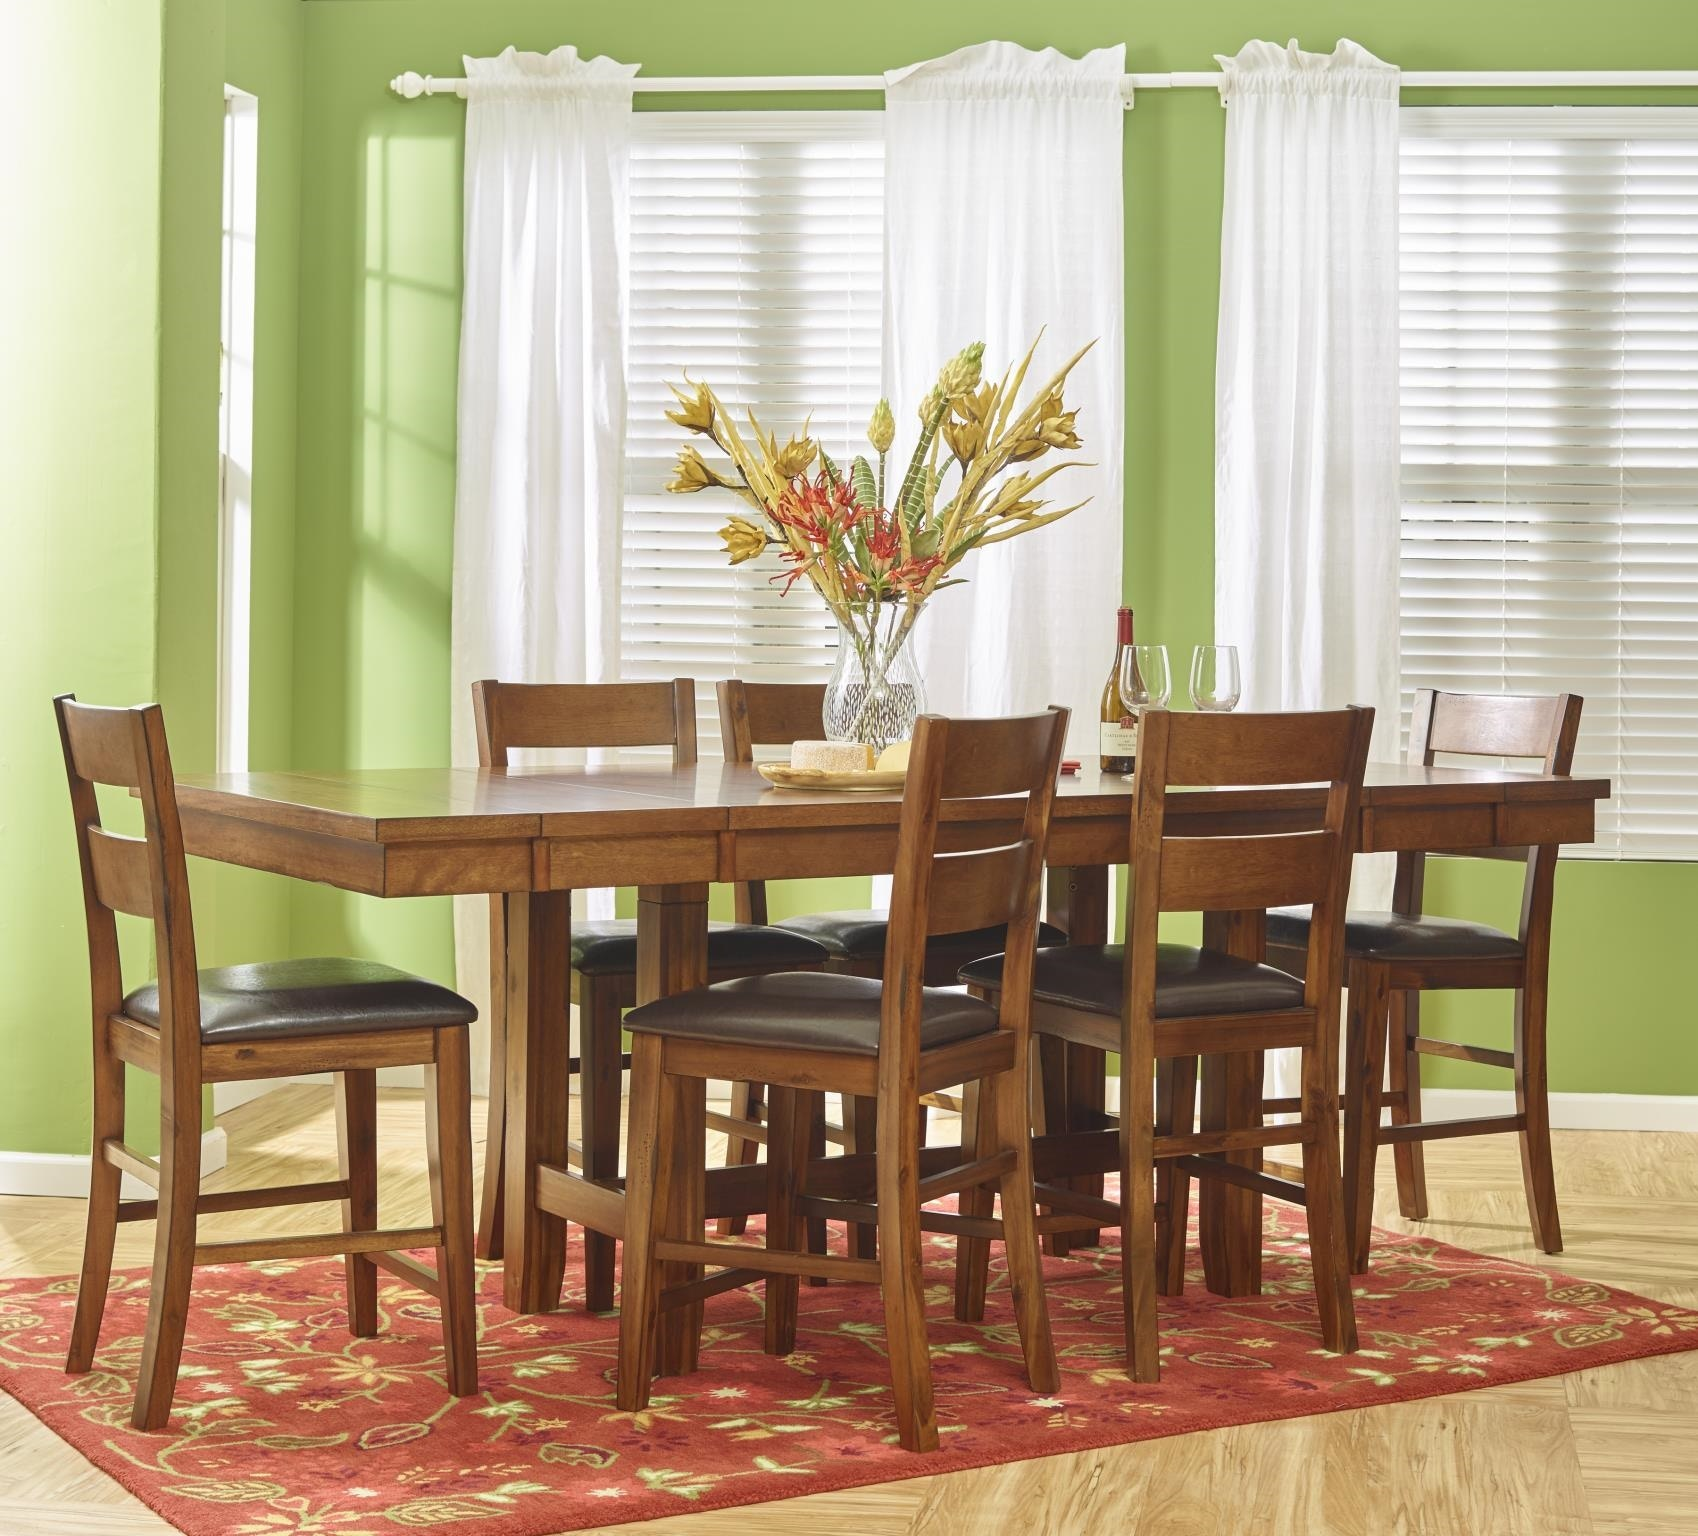 Jofran Dining Room Table amp Chairs Counter Height K698002  : 505 9320high201 from www.hansensfurniture.net size 1024 x 768 jpeg 92kB